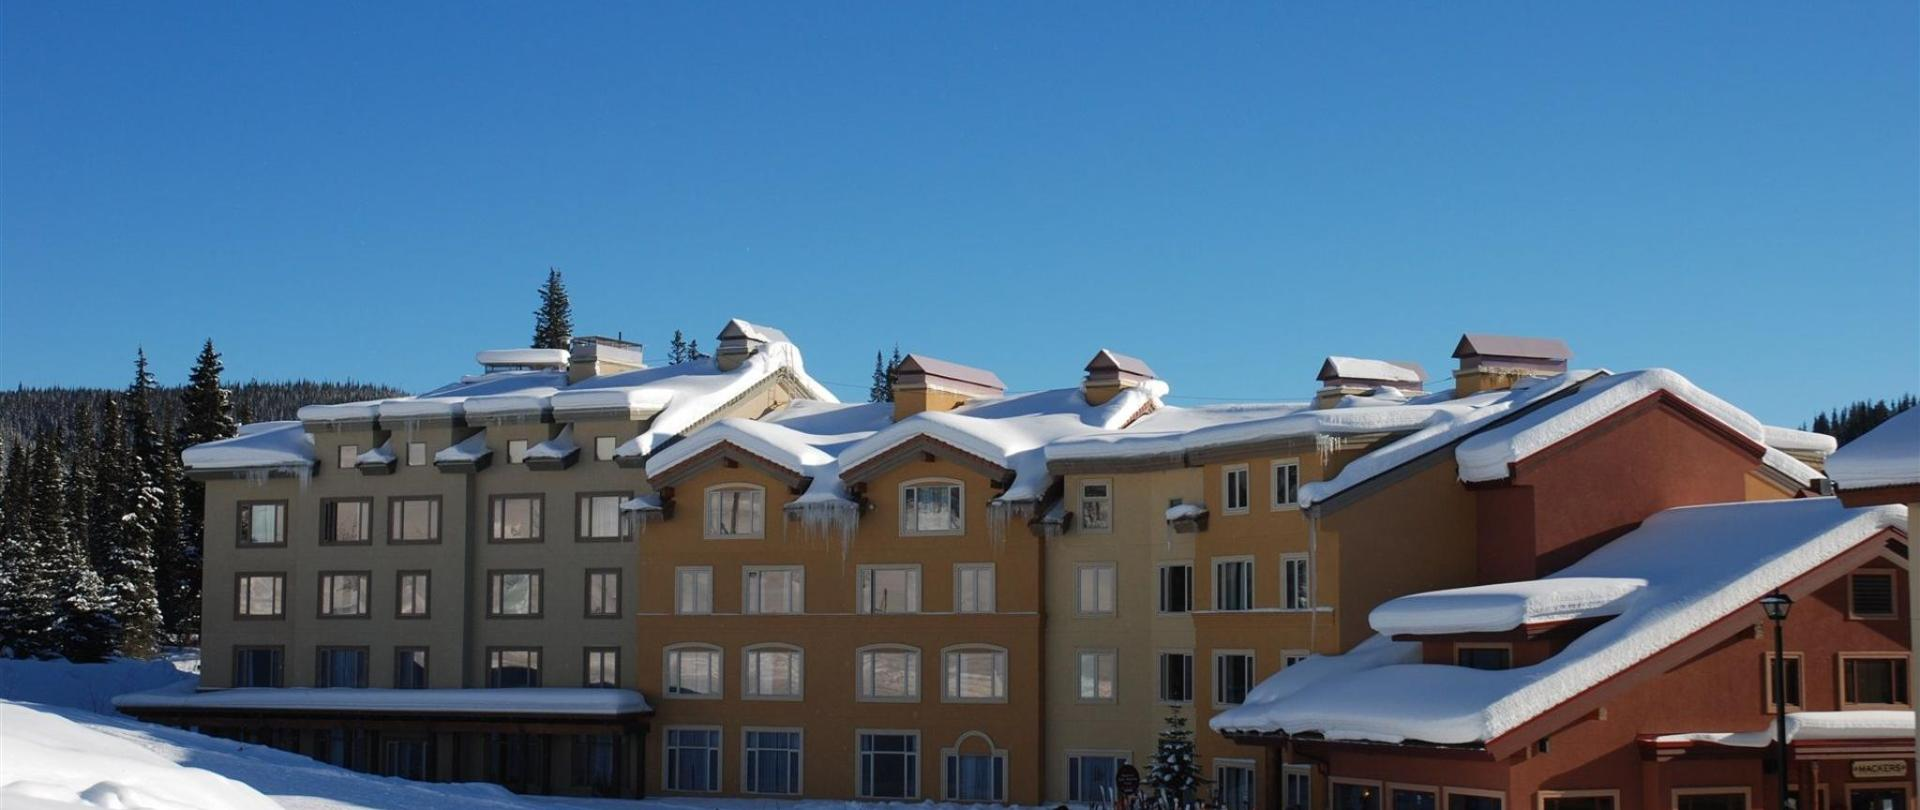 Looking at the hotel from the ski slopes.jpg